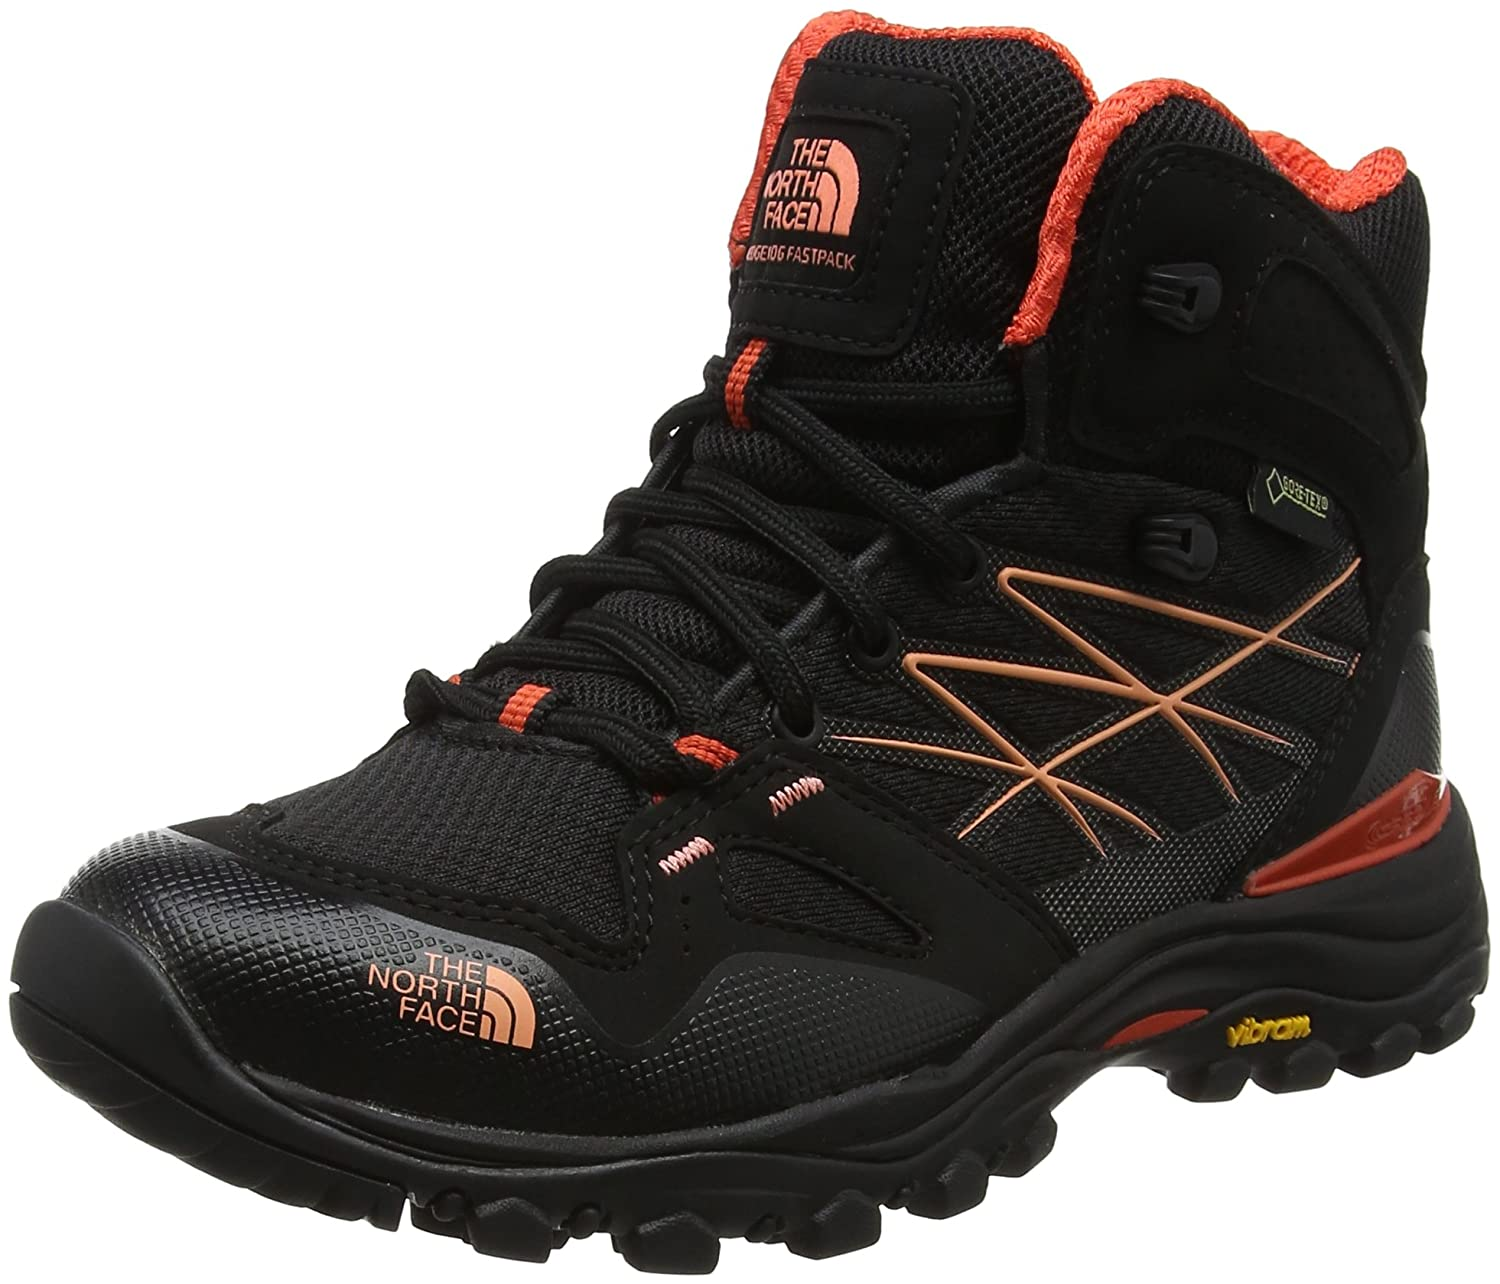 The North Face Hedgehog Fastpack Mid GTX, Botas de Senderismo para Mujer